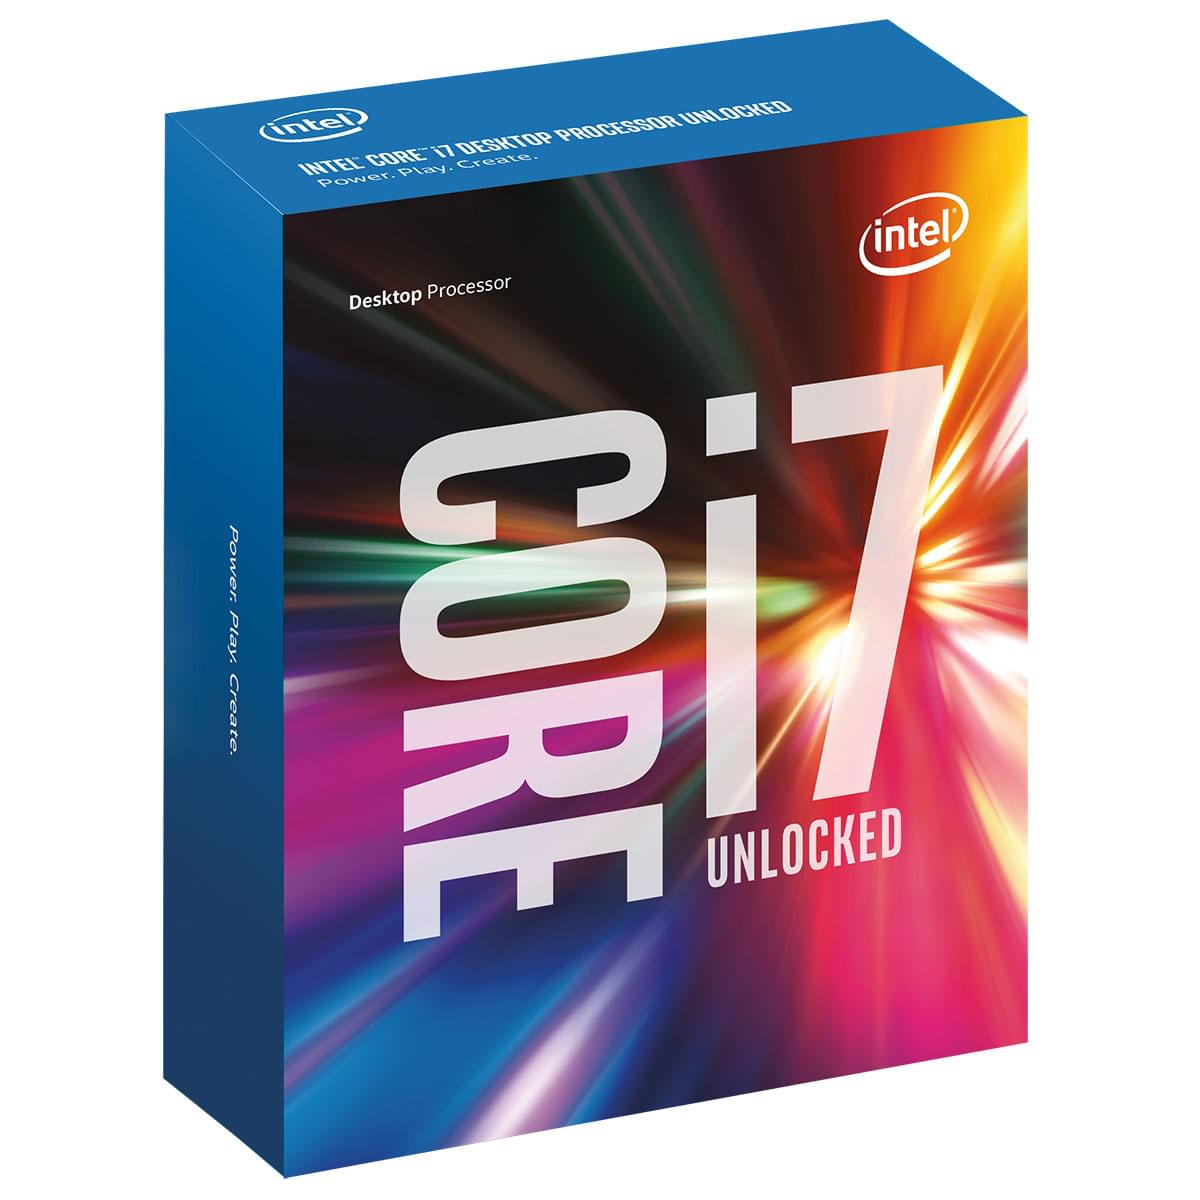 Processeur Intel Core i7 6700K - 4GHz - Gamer -  - 0